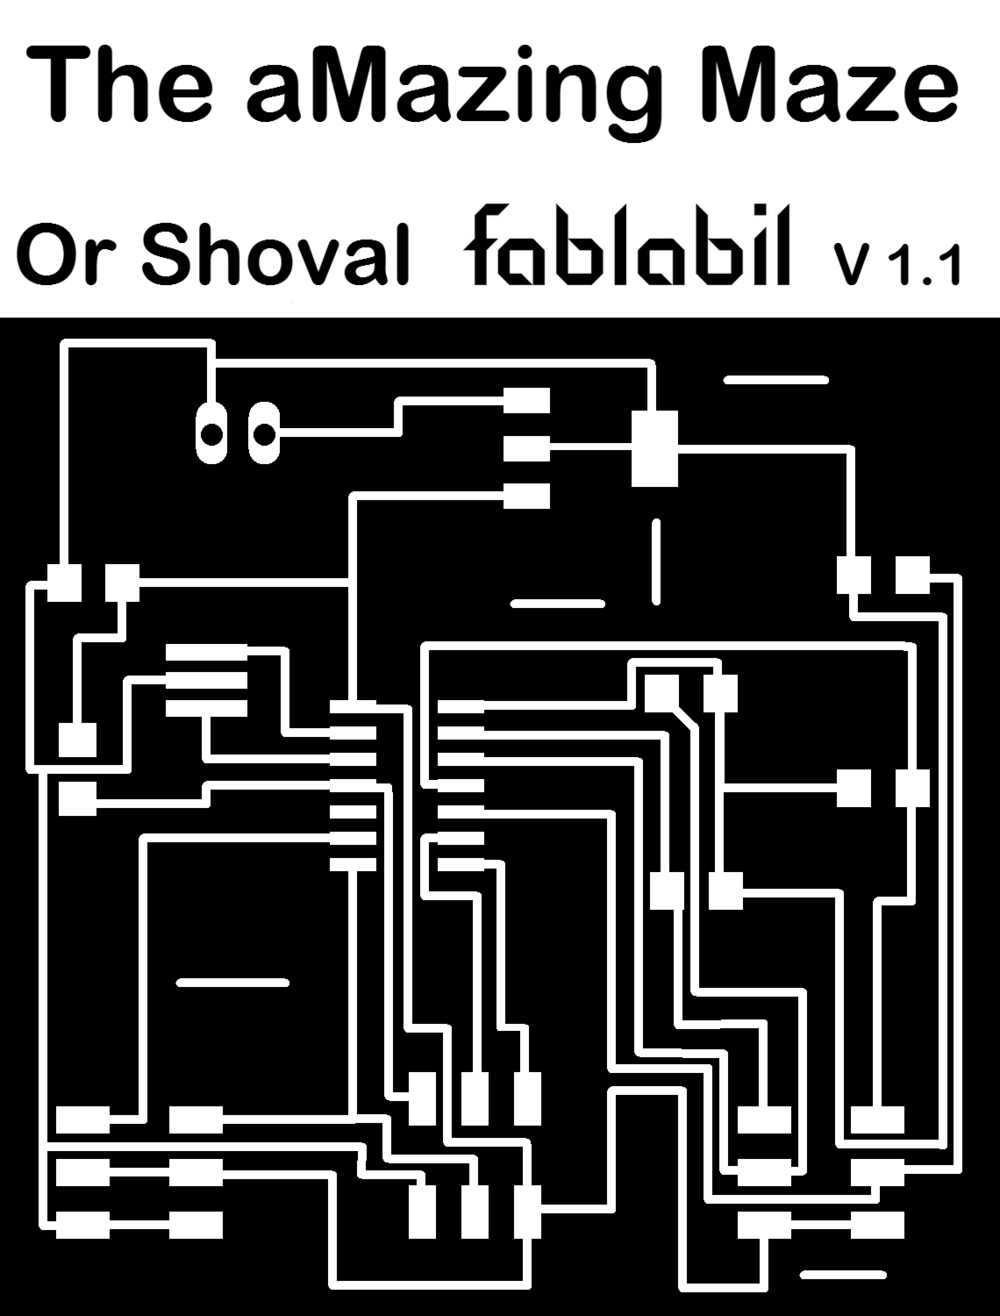 Or Shoval - Final_Traces 1.1.png